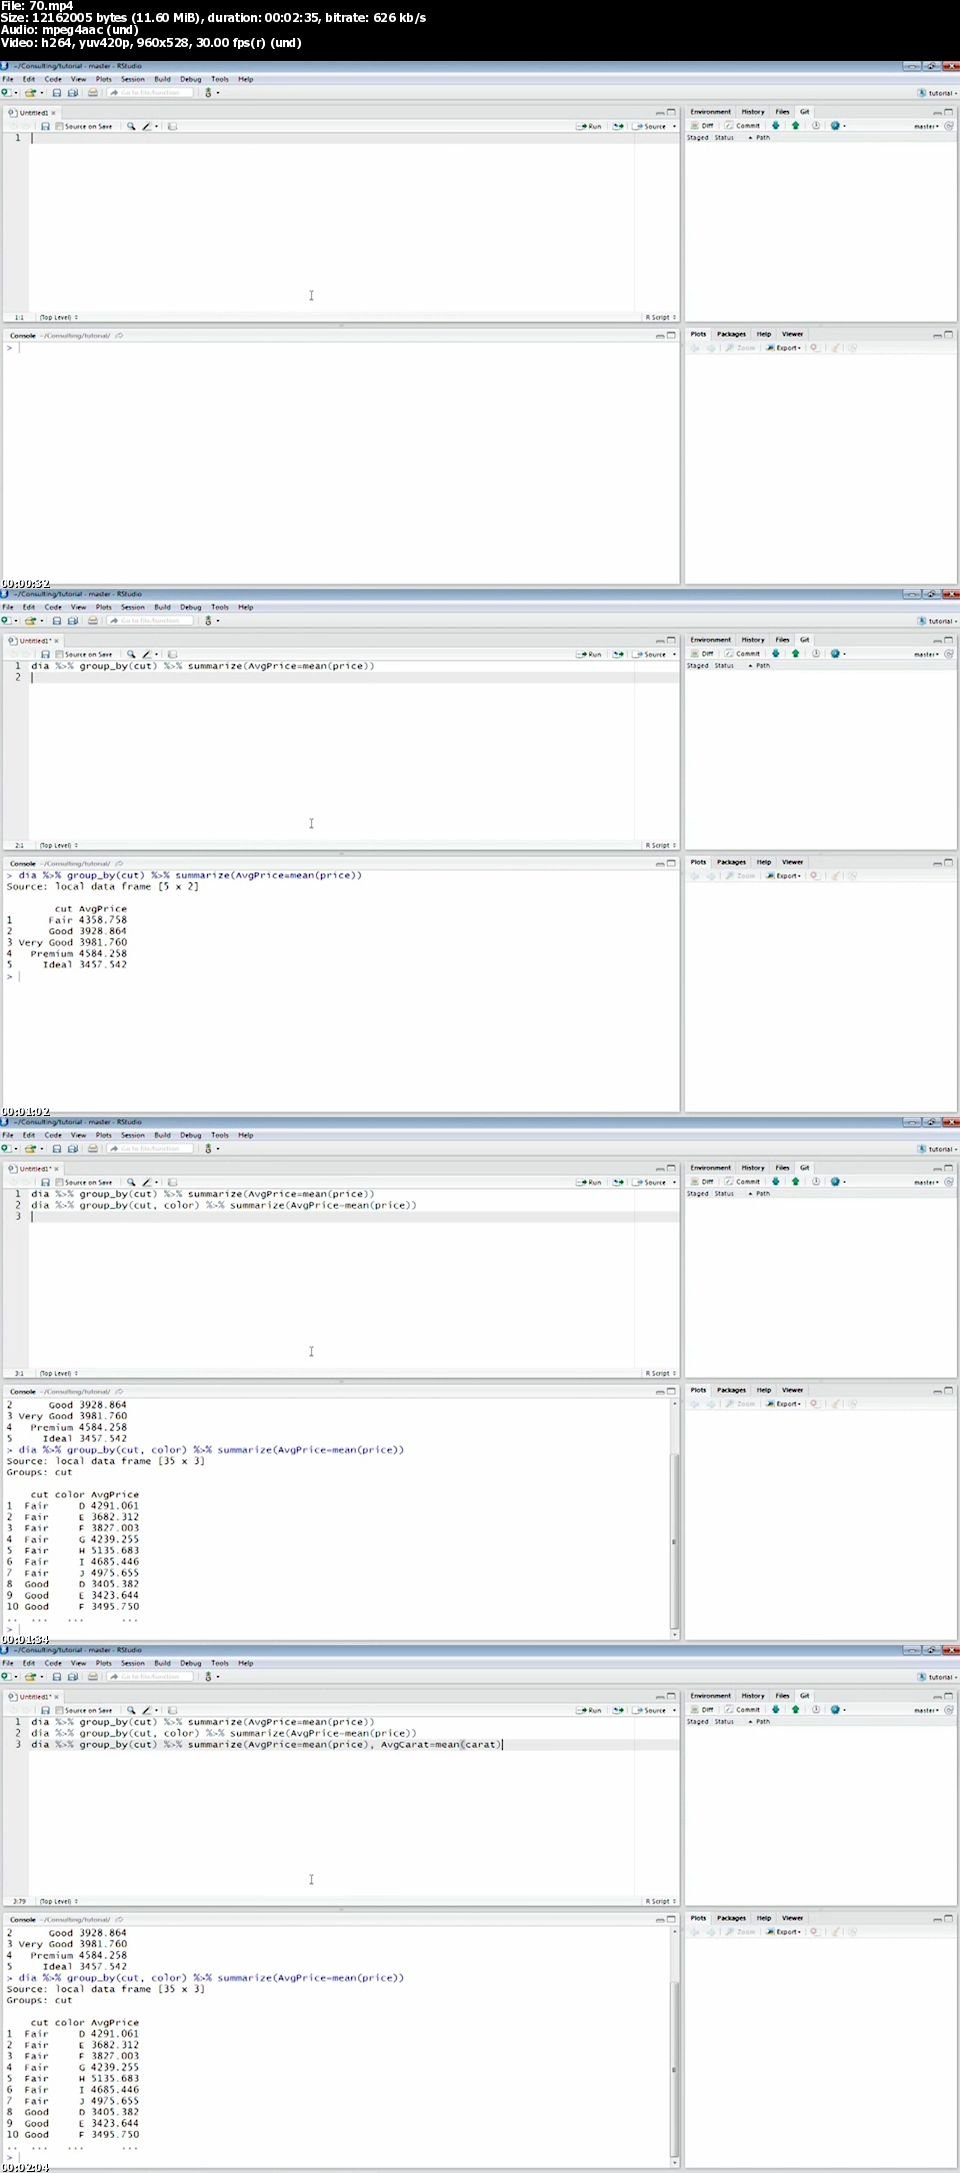 bayesian linear regression r code programming - FREE ONLINE